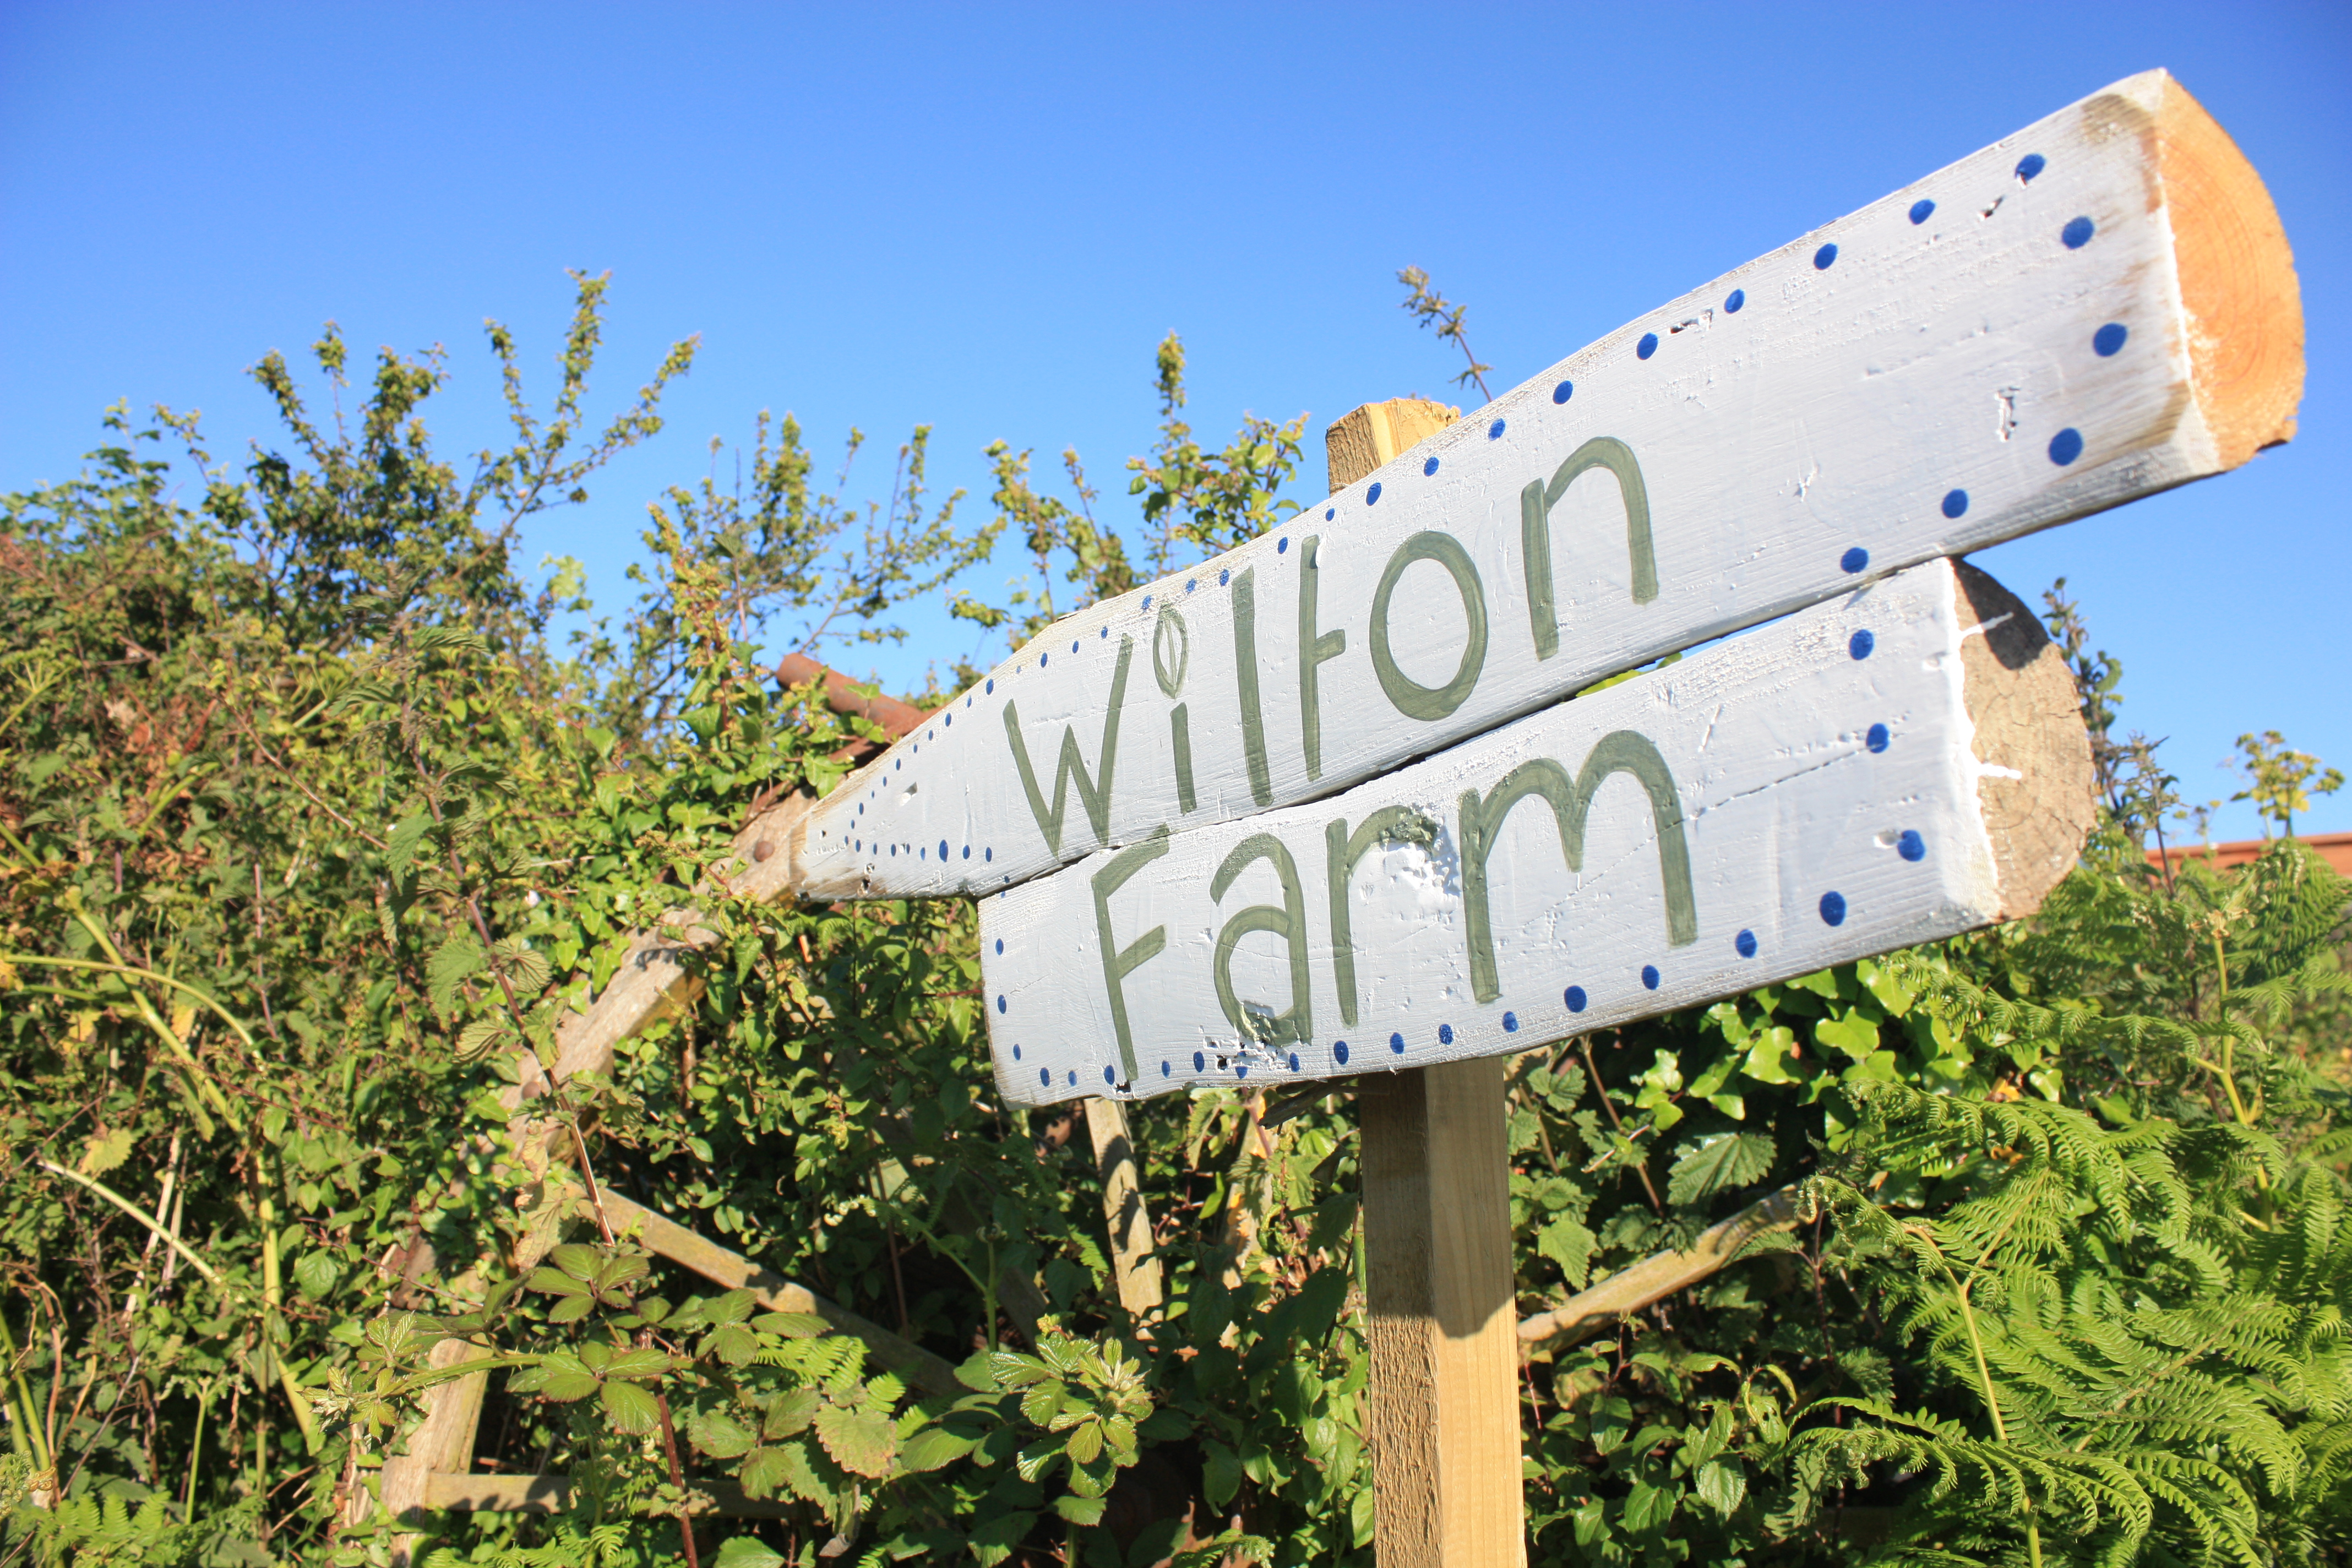 Wilton Farm Sign